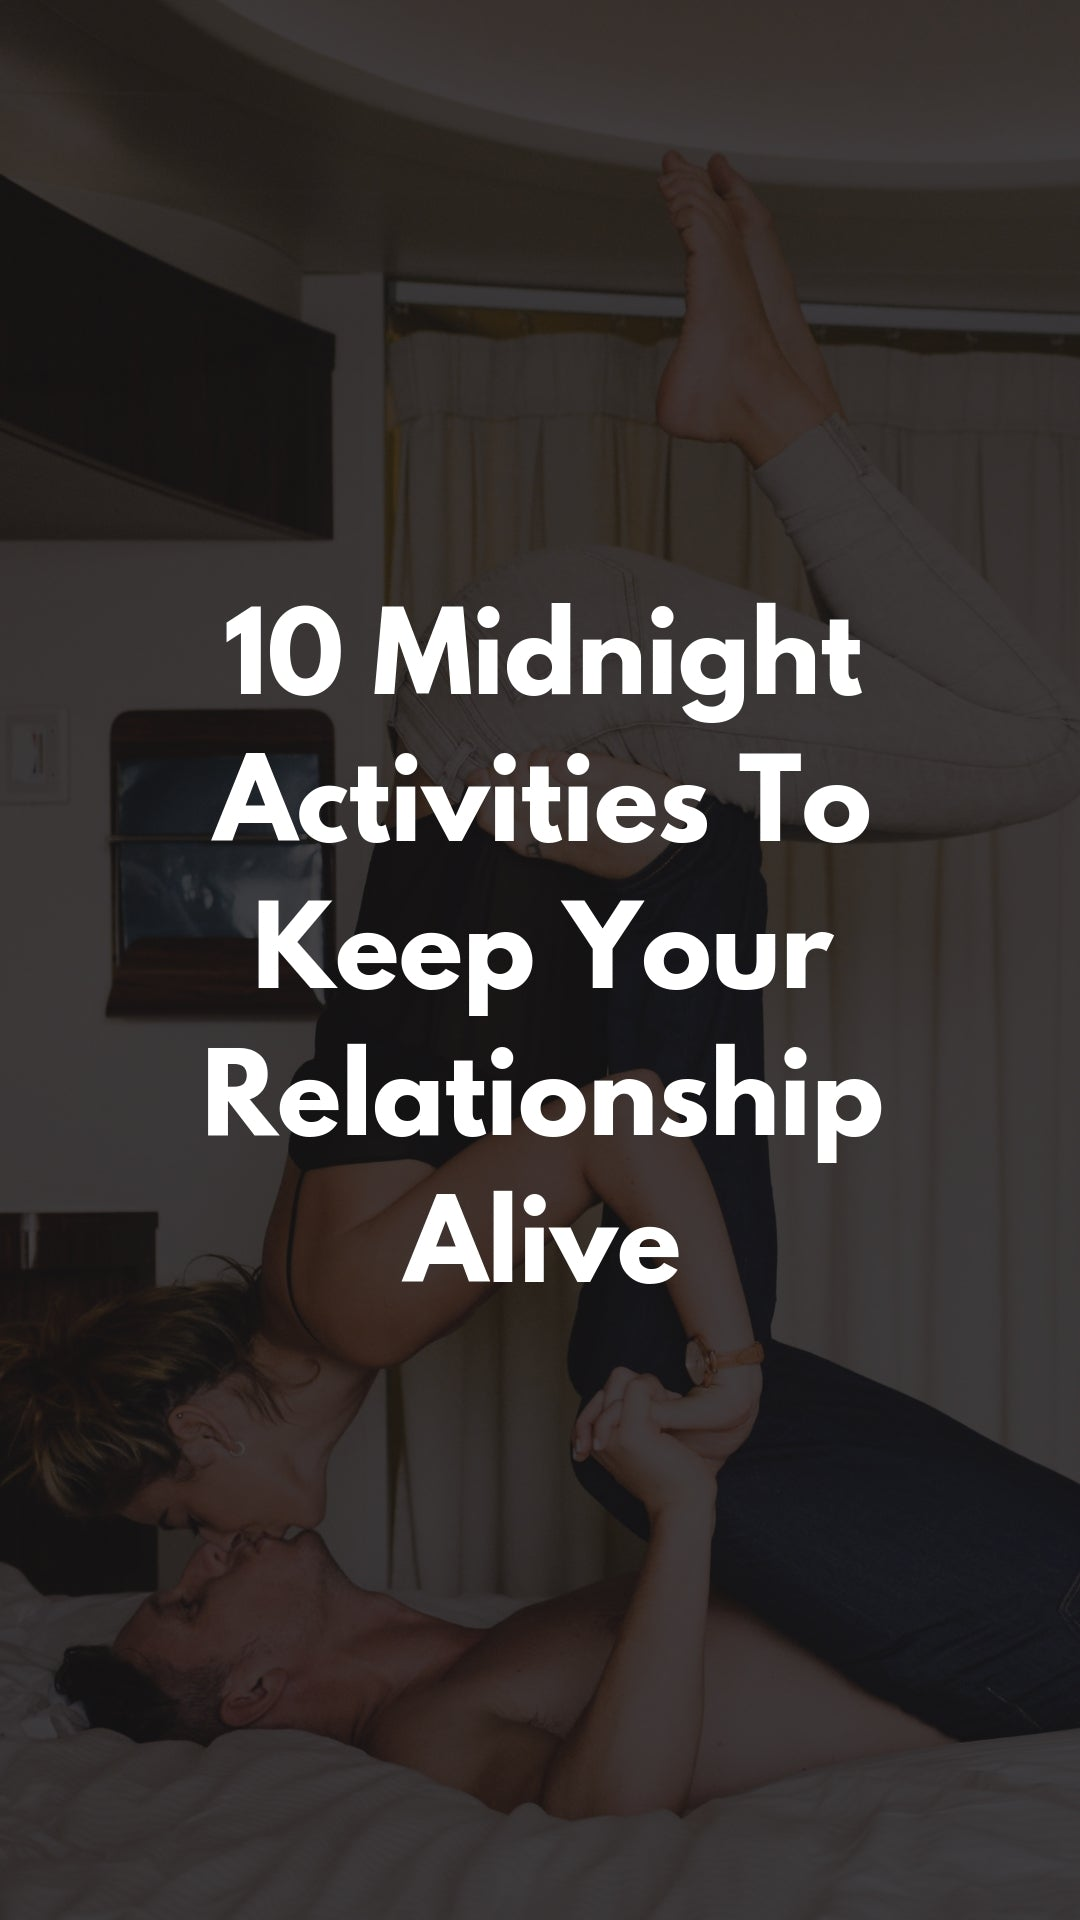 10 Midnight Activities To Keep Your Relationship Alive